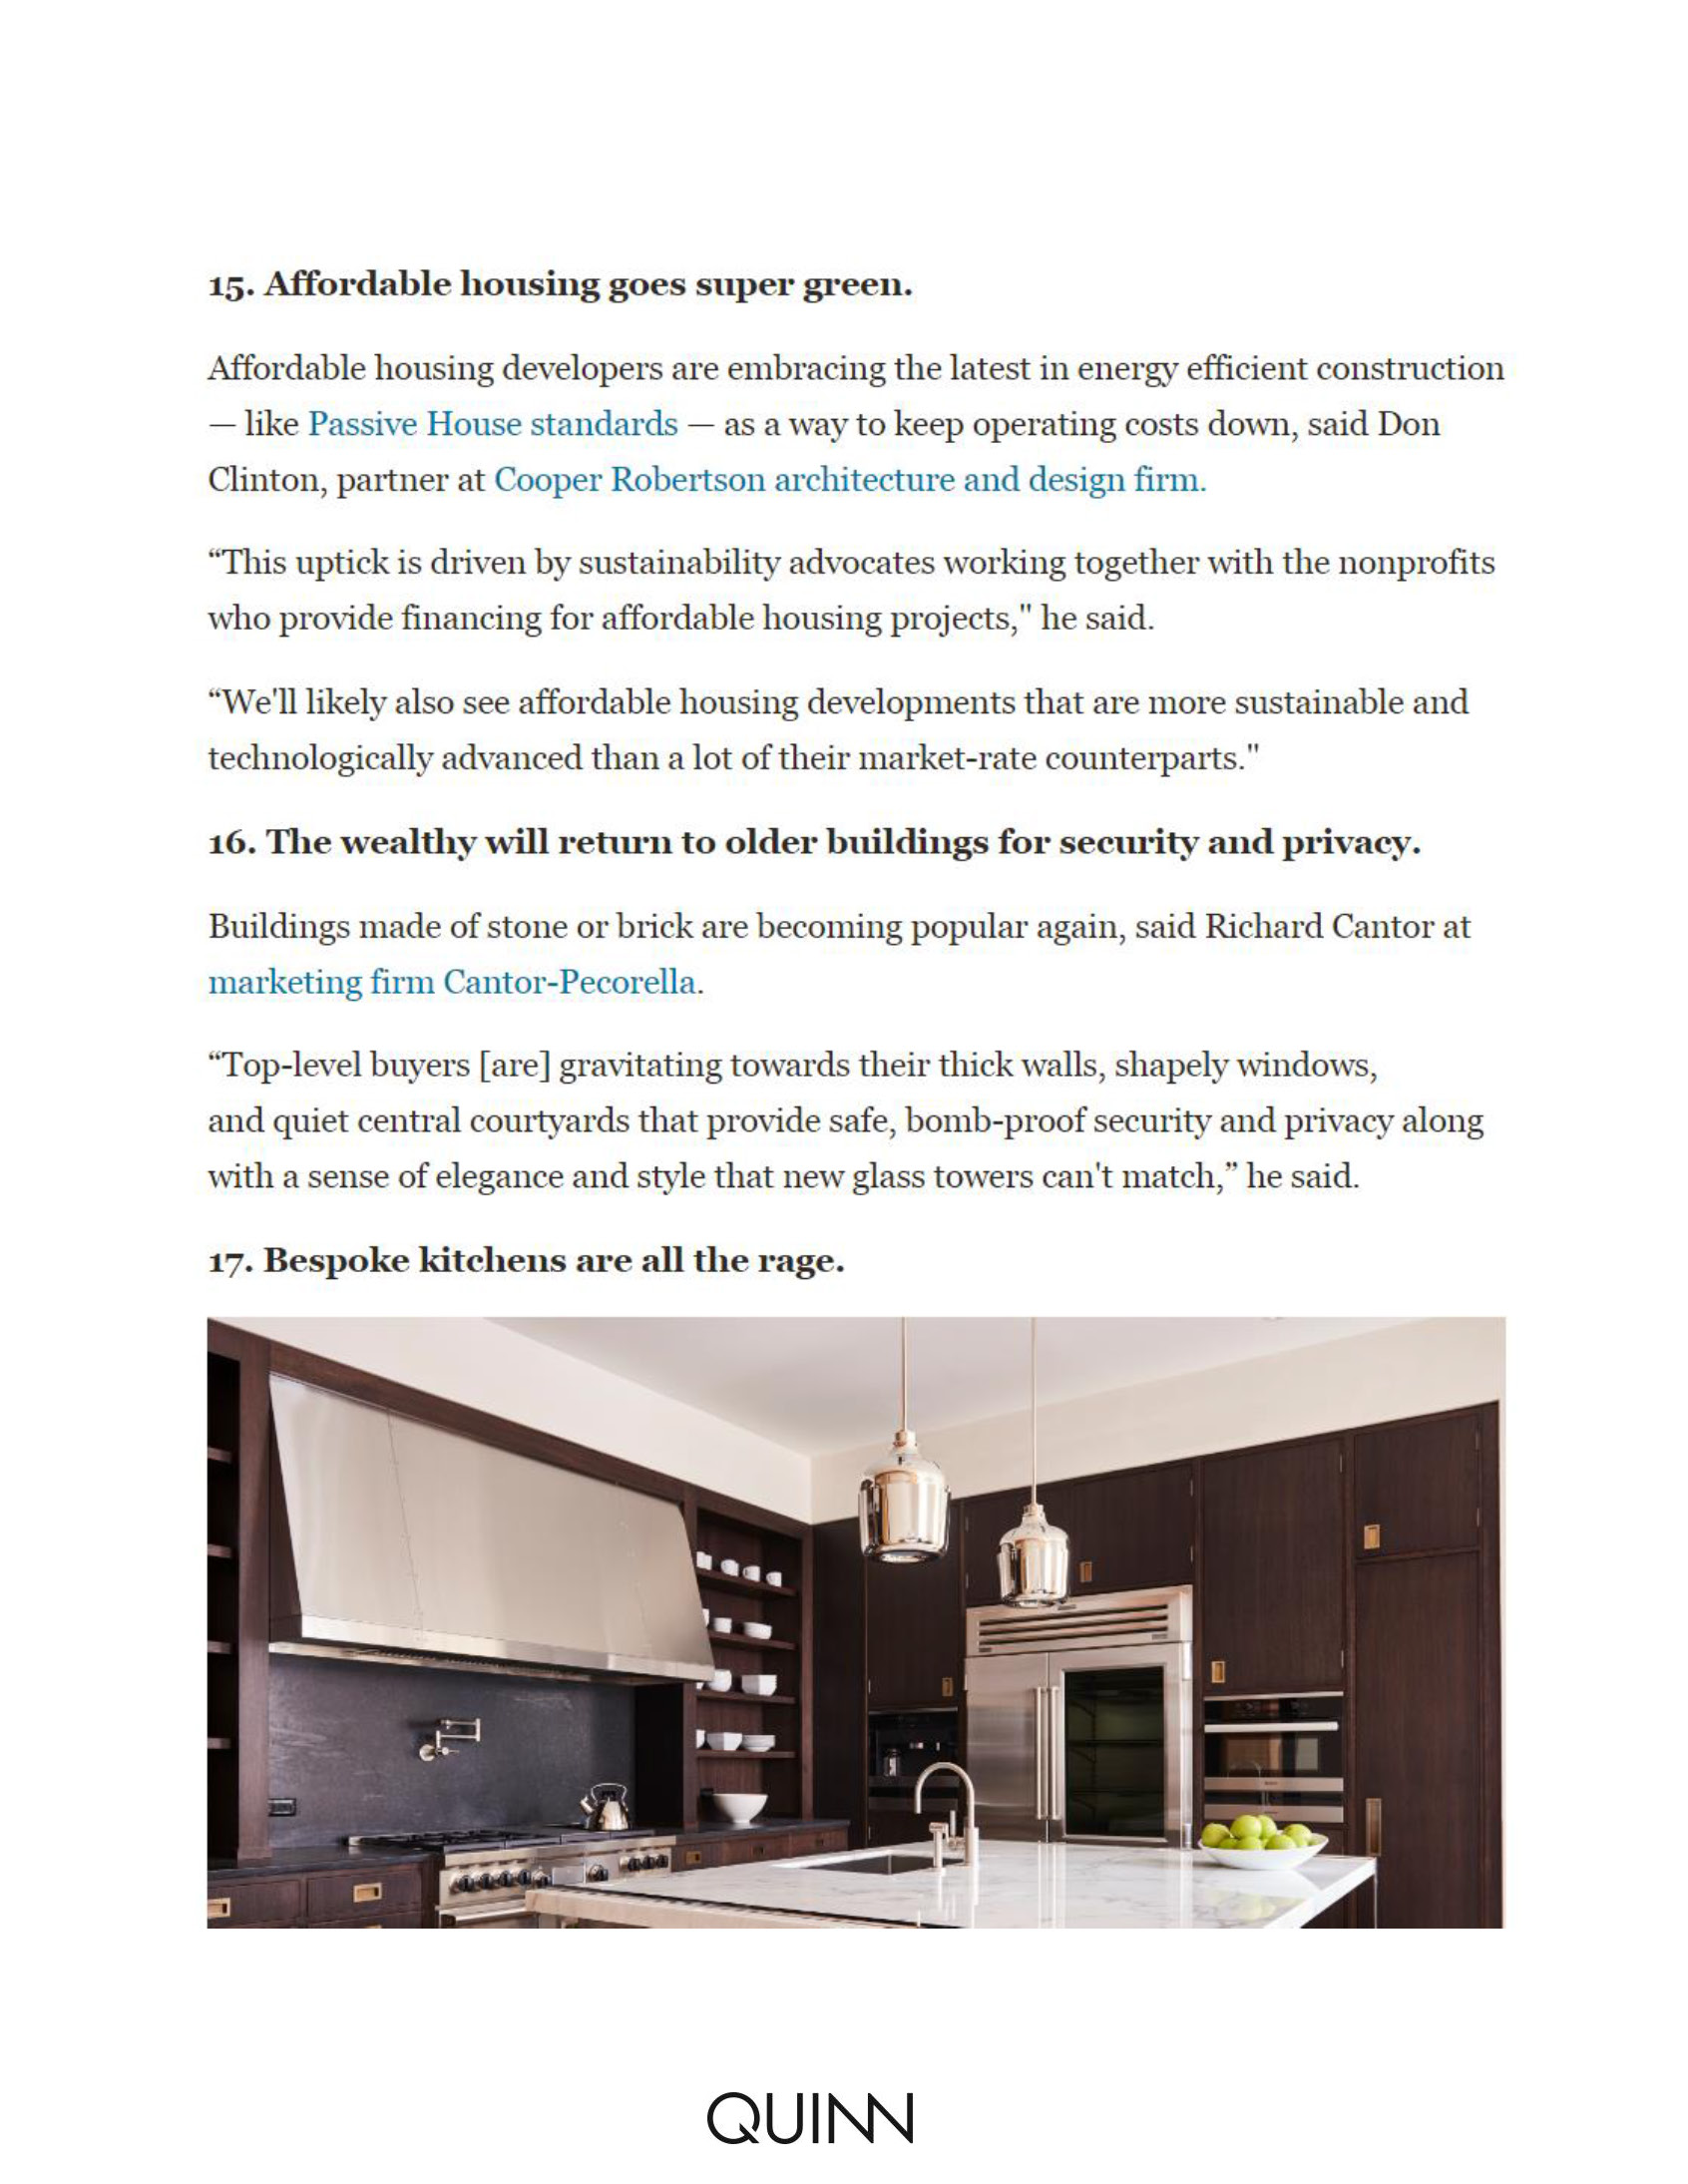 dnainfo-17-predictions-for-nycs-residential-real-estate-in-2017-12-20-1_page_8